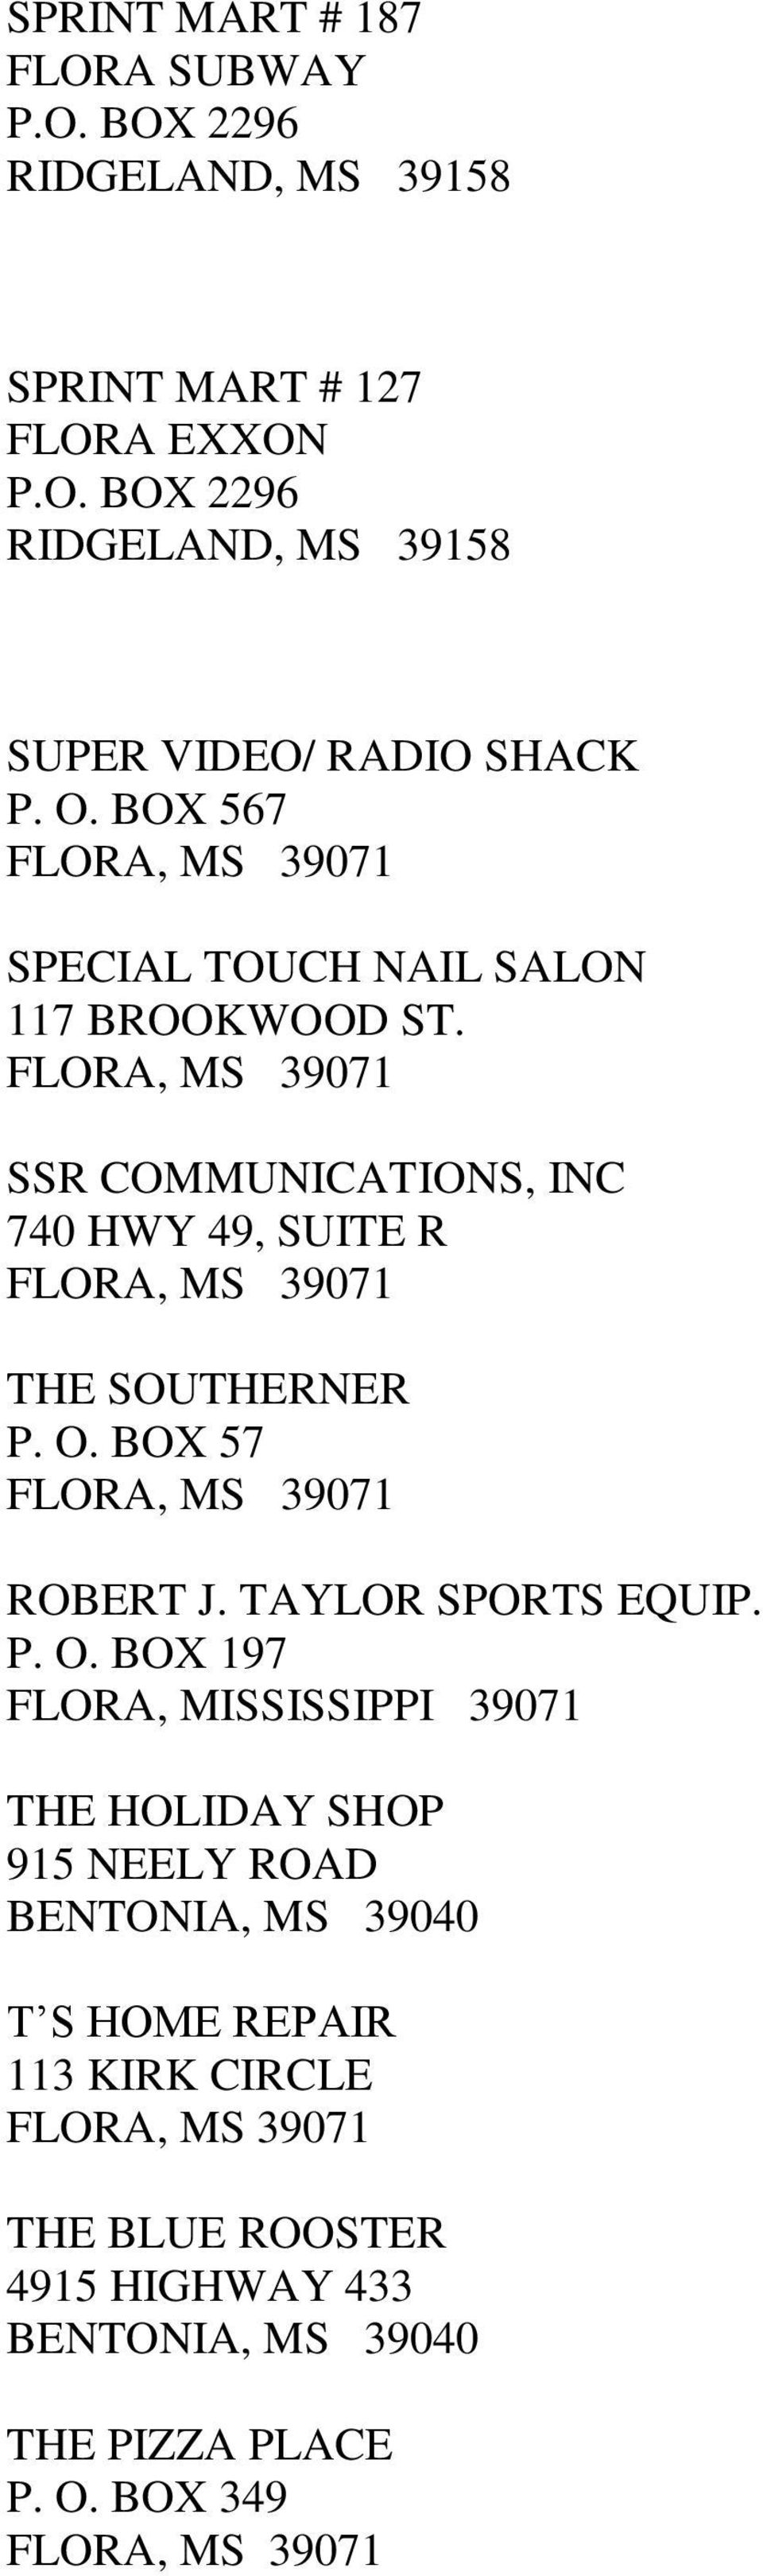 BOX 57 ROBERT J. TAYLOR SPORTS EQUIP. P. O.